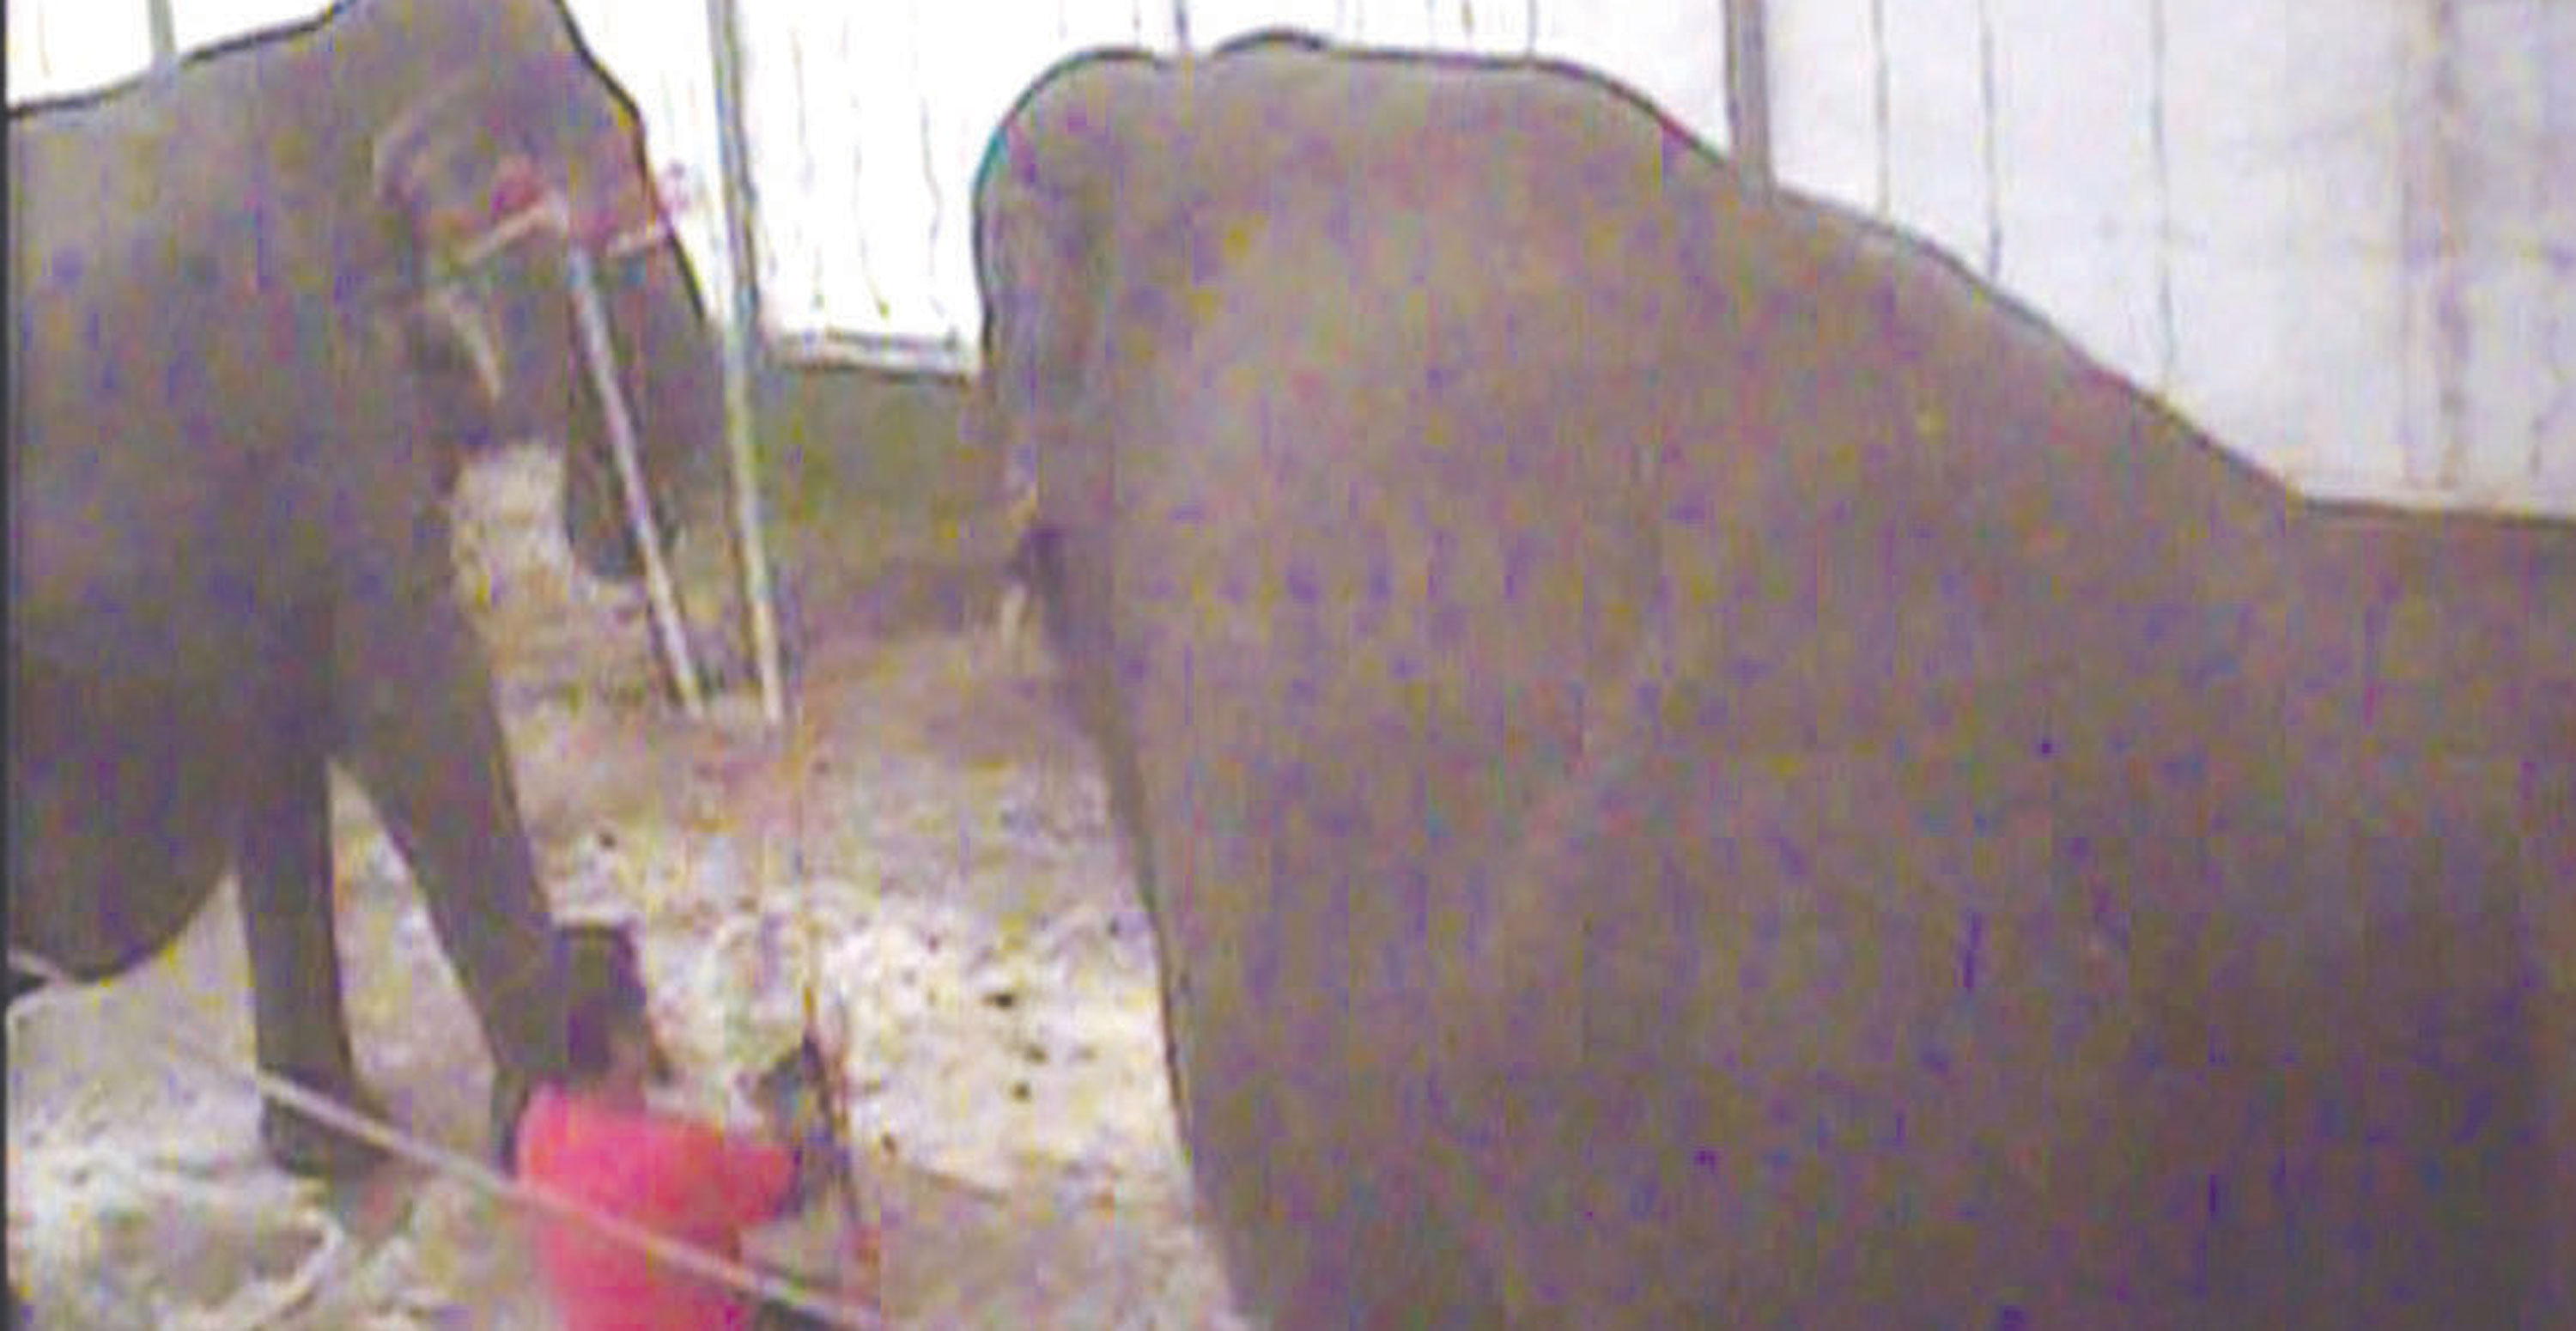 Great British Circus elephant abuse